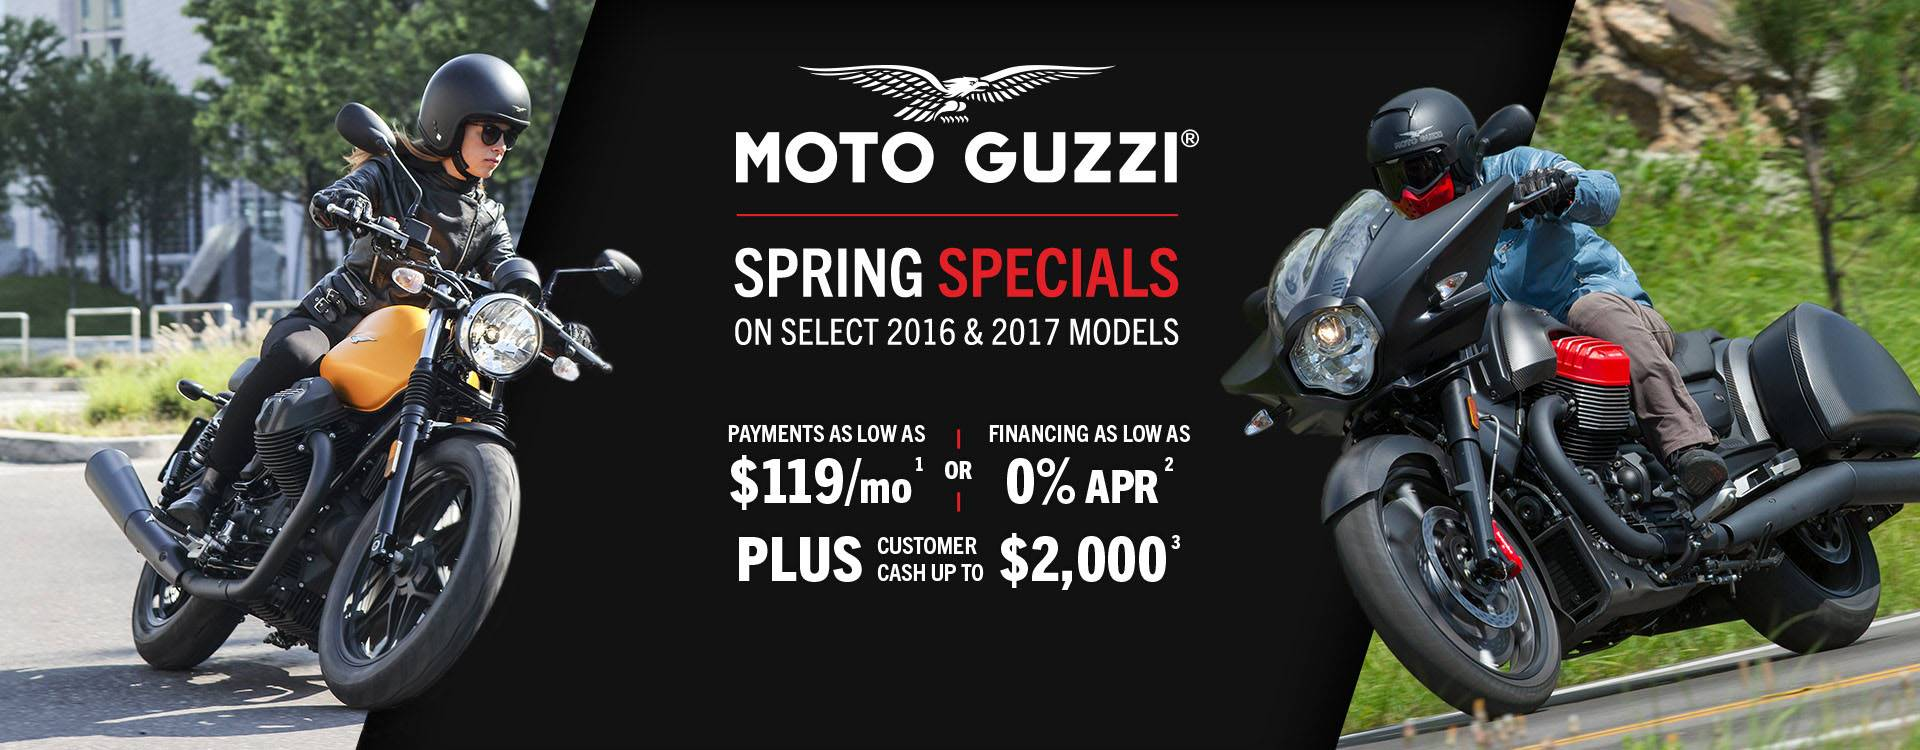 Moto Guzzi - Spring Specials - Payments as Low as $119 / mo. or Financing as Low as 0% APR Plus Customer Cash Up to $2,000